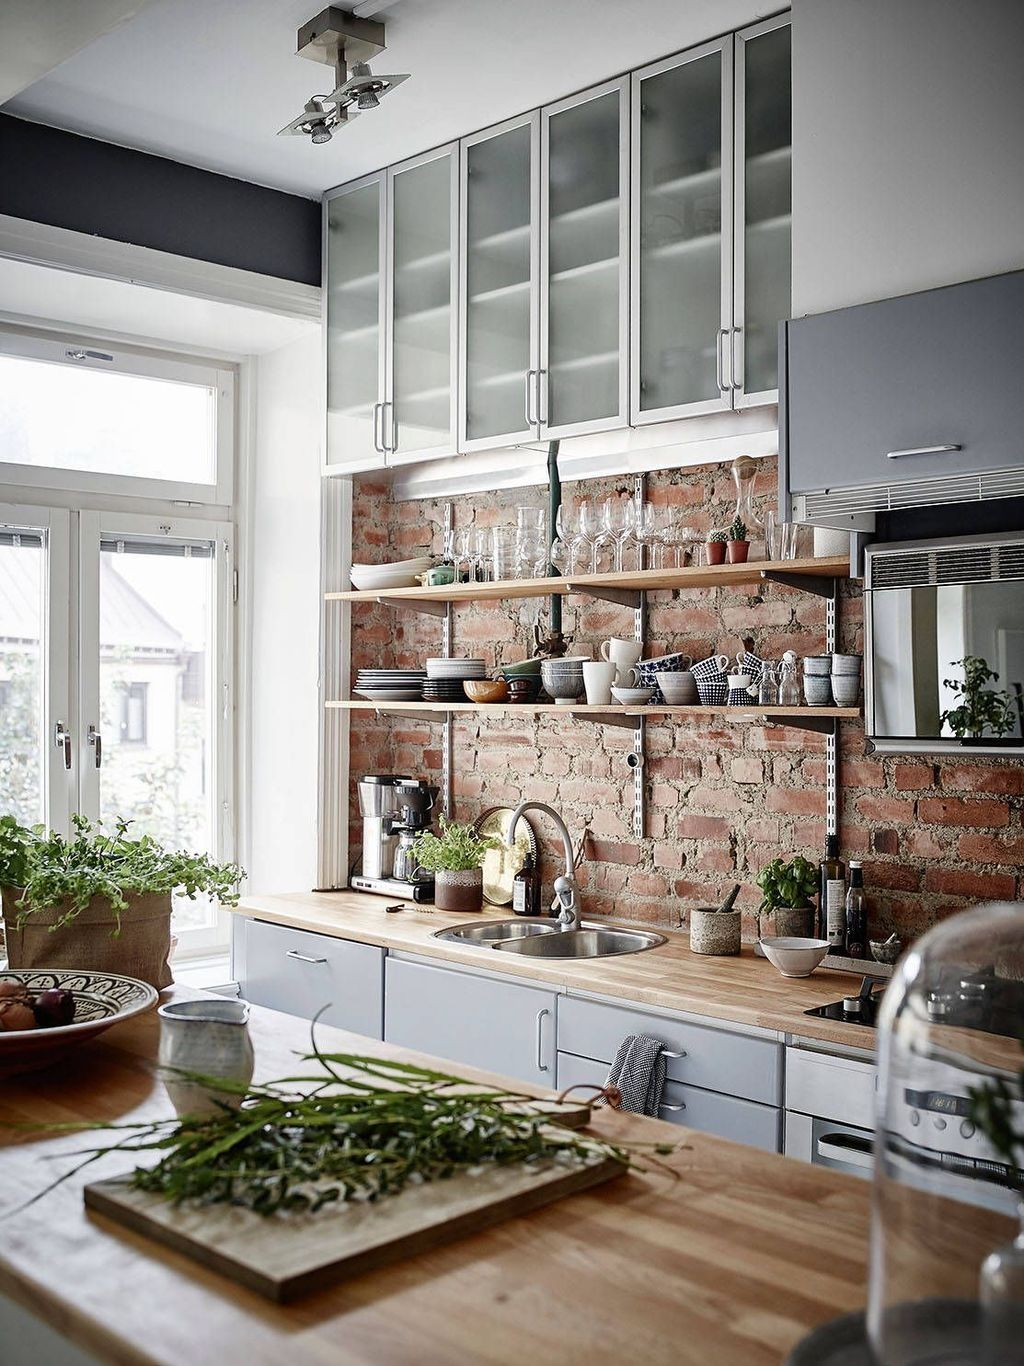 48 relaxing apartment kitchen design ideas kitchen pinterest rh pinterest com